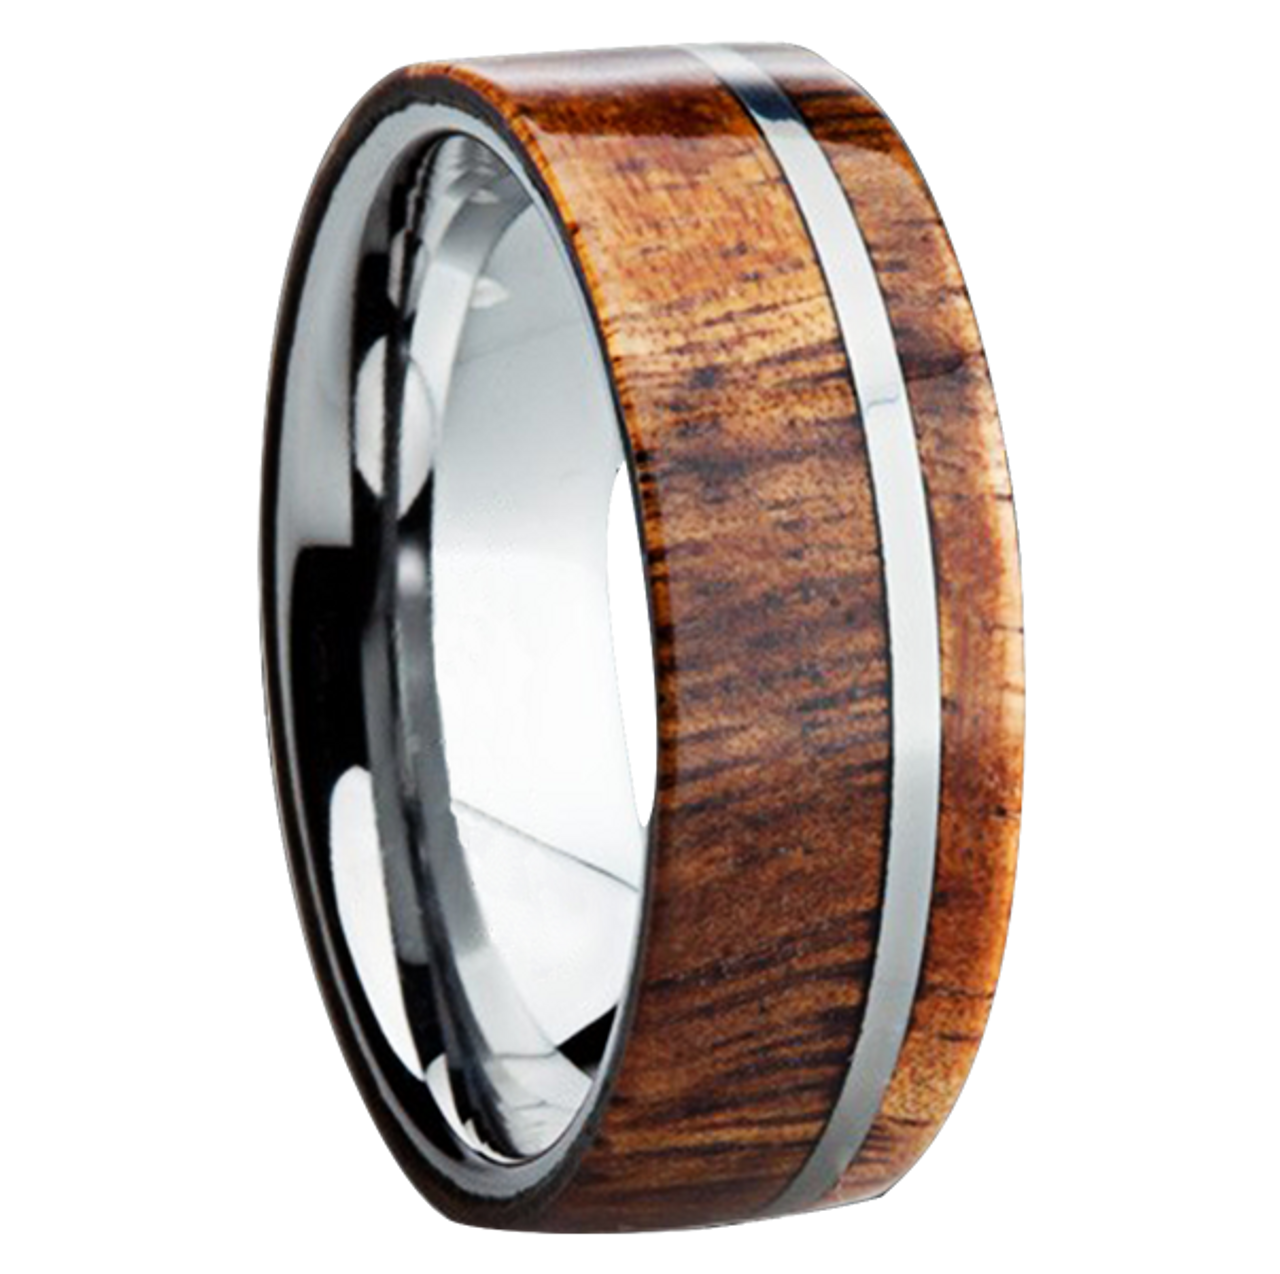 tunsten wood in bands koa wedding mwb at titanium mens rings band carbide mm tayloright